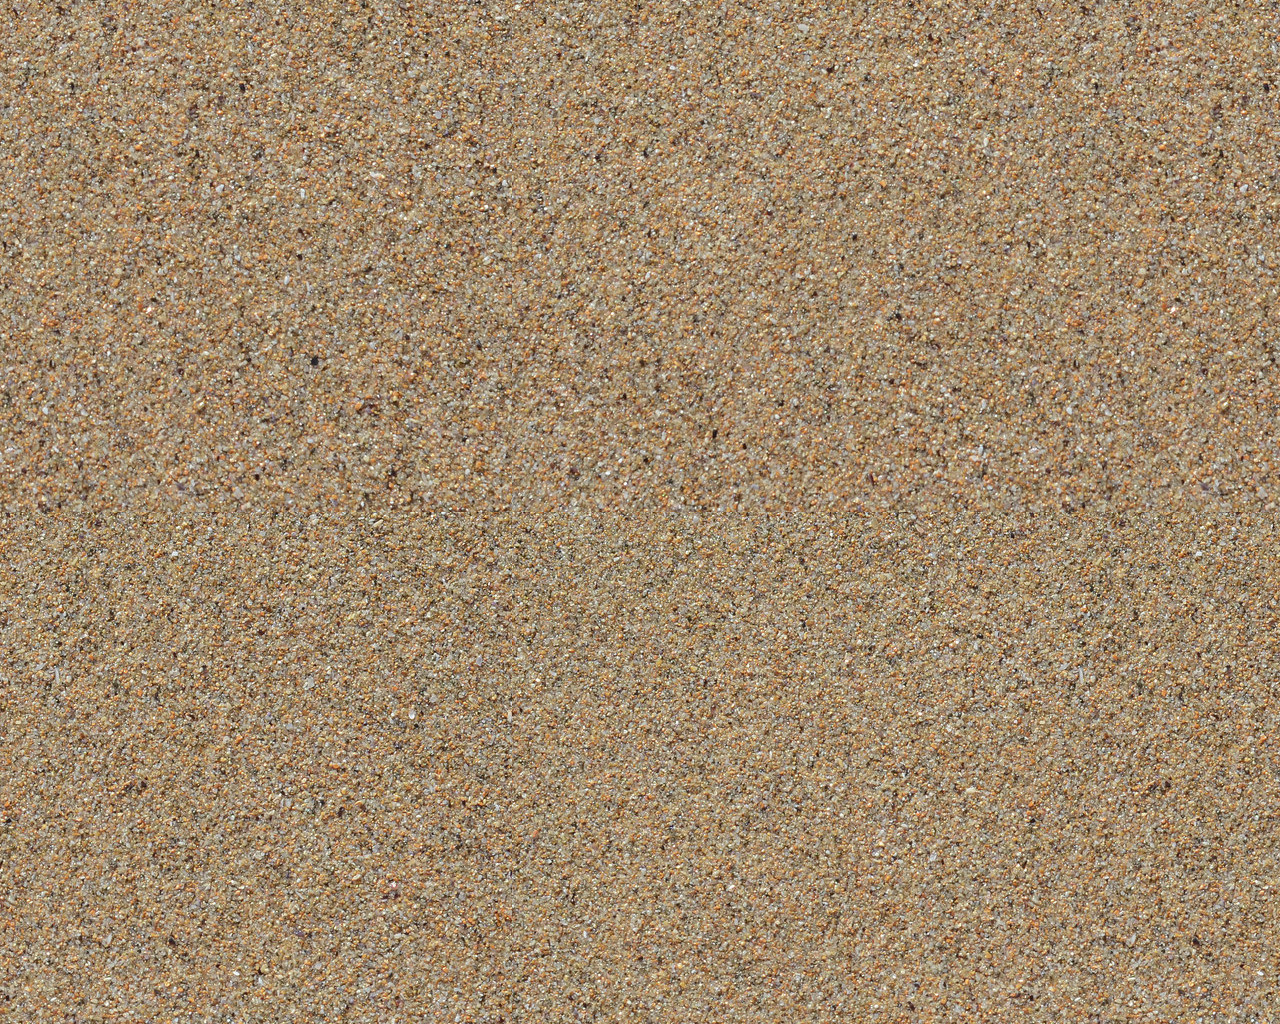 Smooth Sand Download Royalty Free Texture